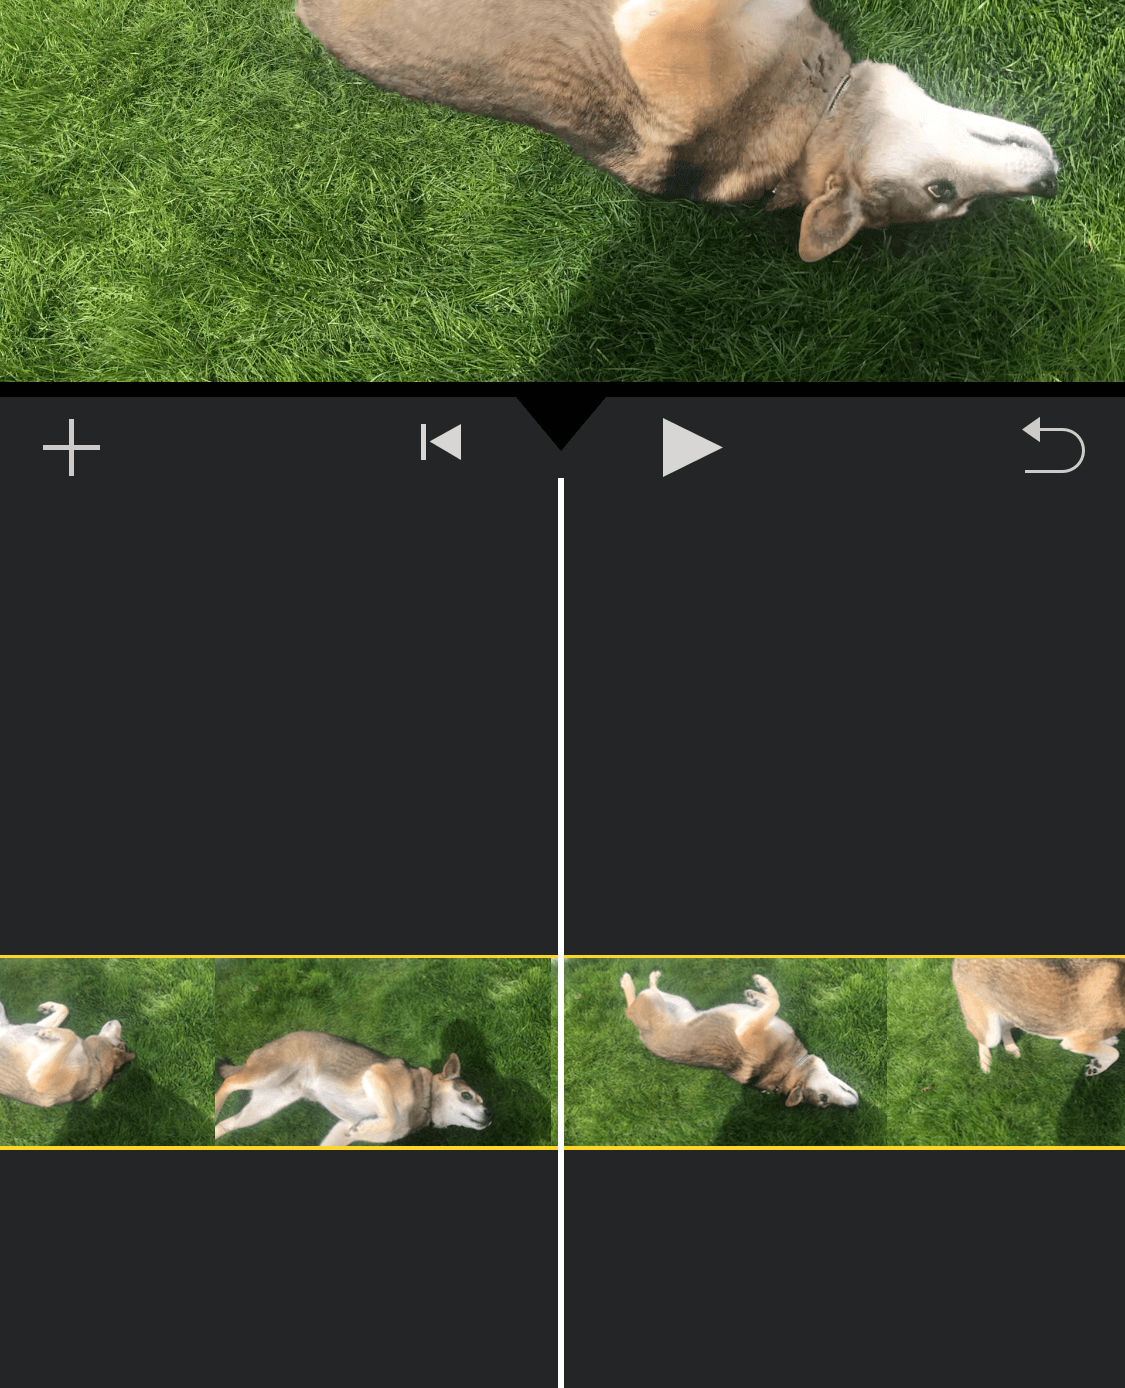 tap video clip to select